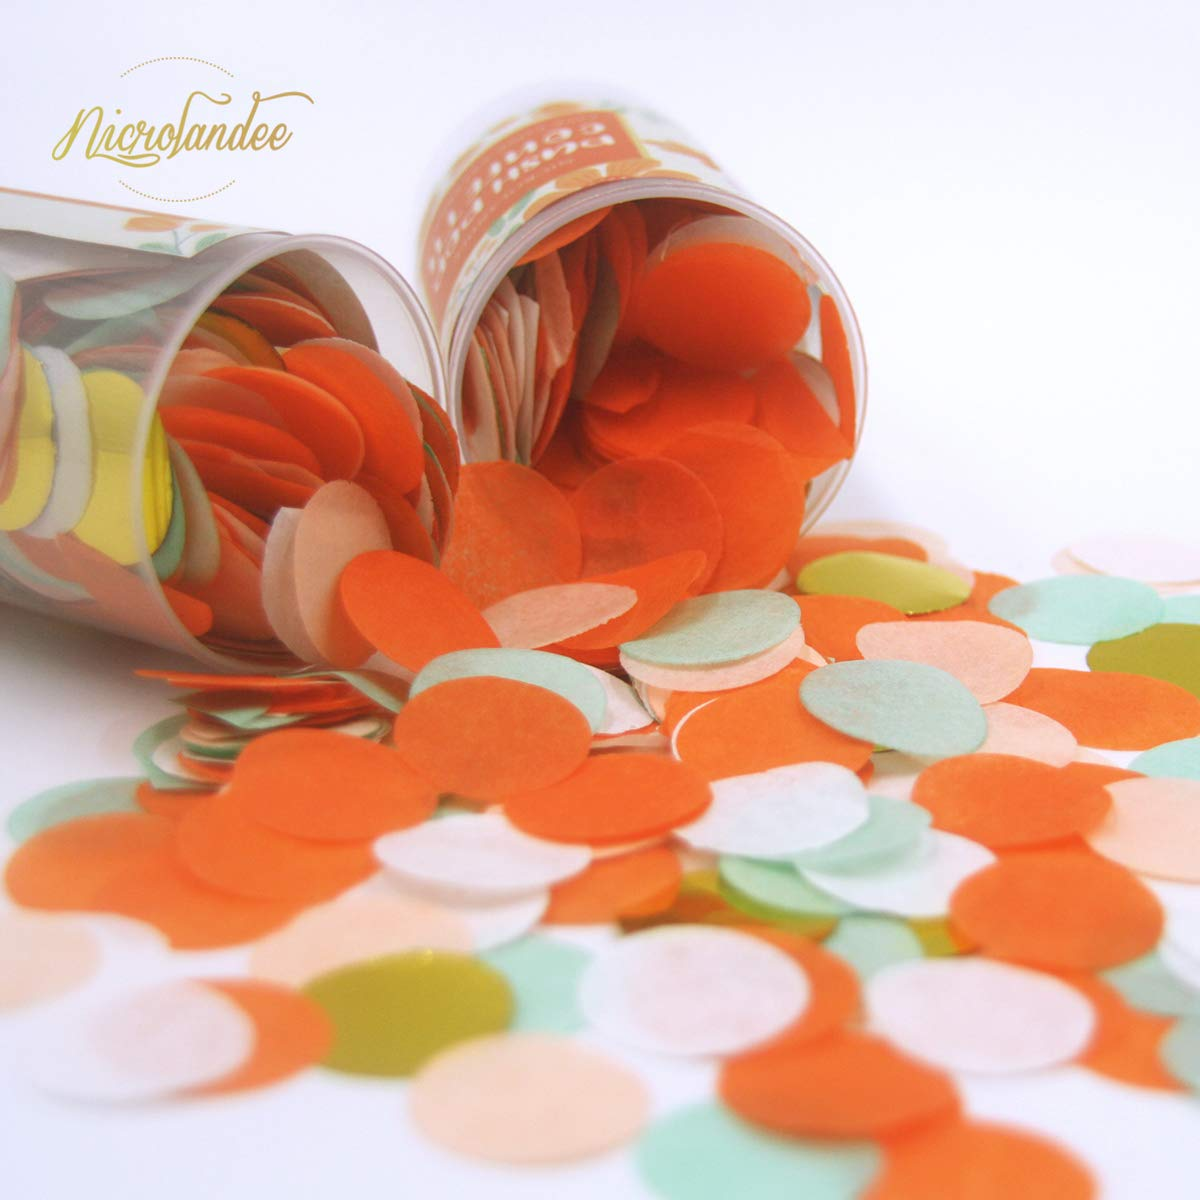 NICROLANDEE Birthday Party Confetti Poppers Foil Dots Tissue Paper Confetti Push Pop Containers Coral Sprinkle Confetti for Wedding Bridal Shower Bridesmaid Party Baby Shower Decorations 4 Pcs by NICROLANDEE (Image #5)